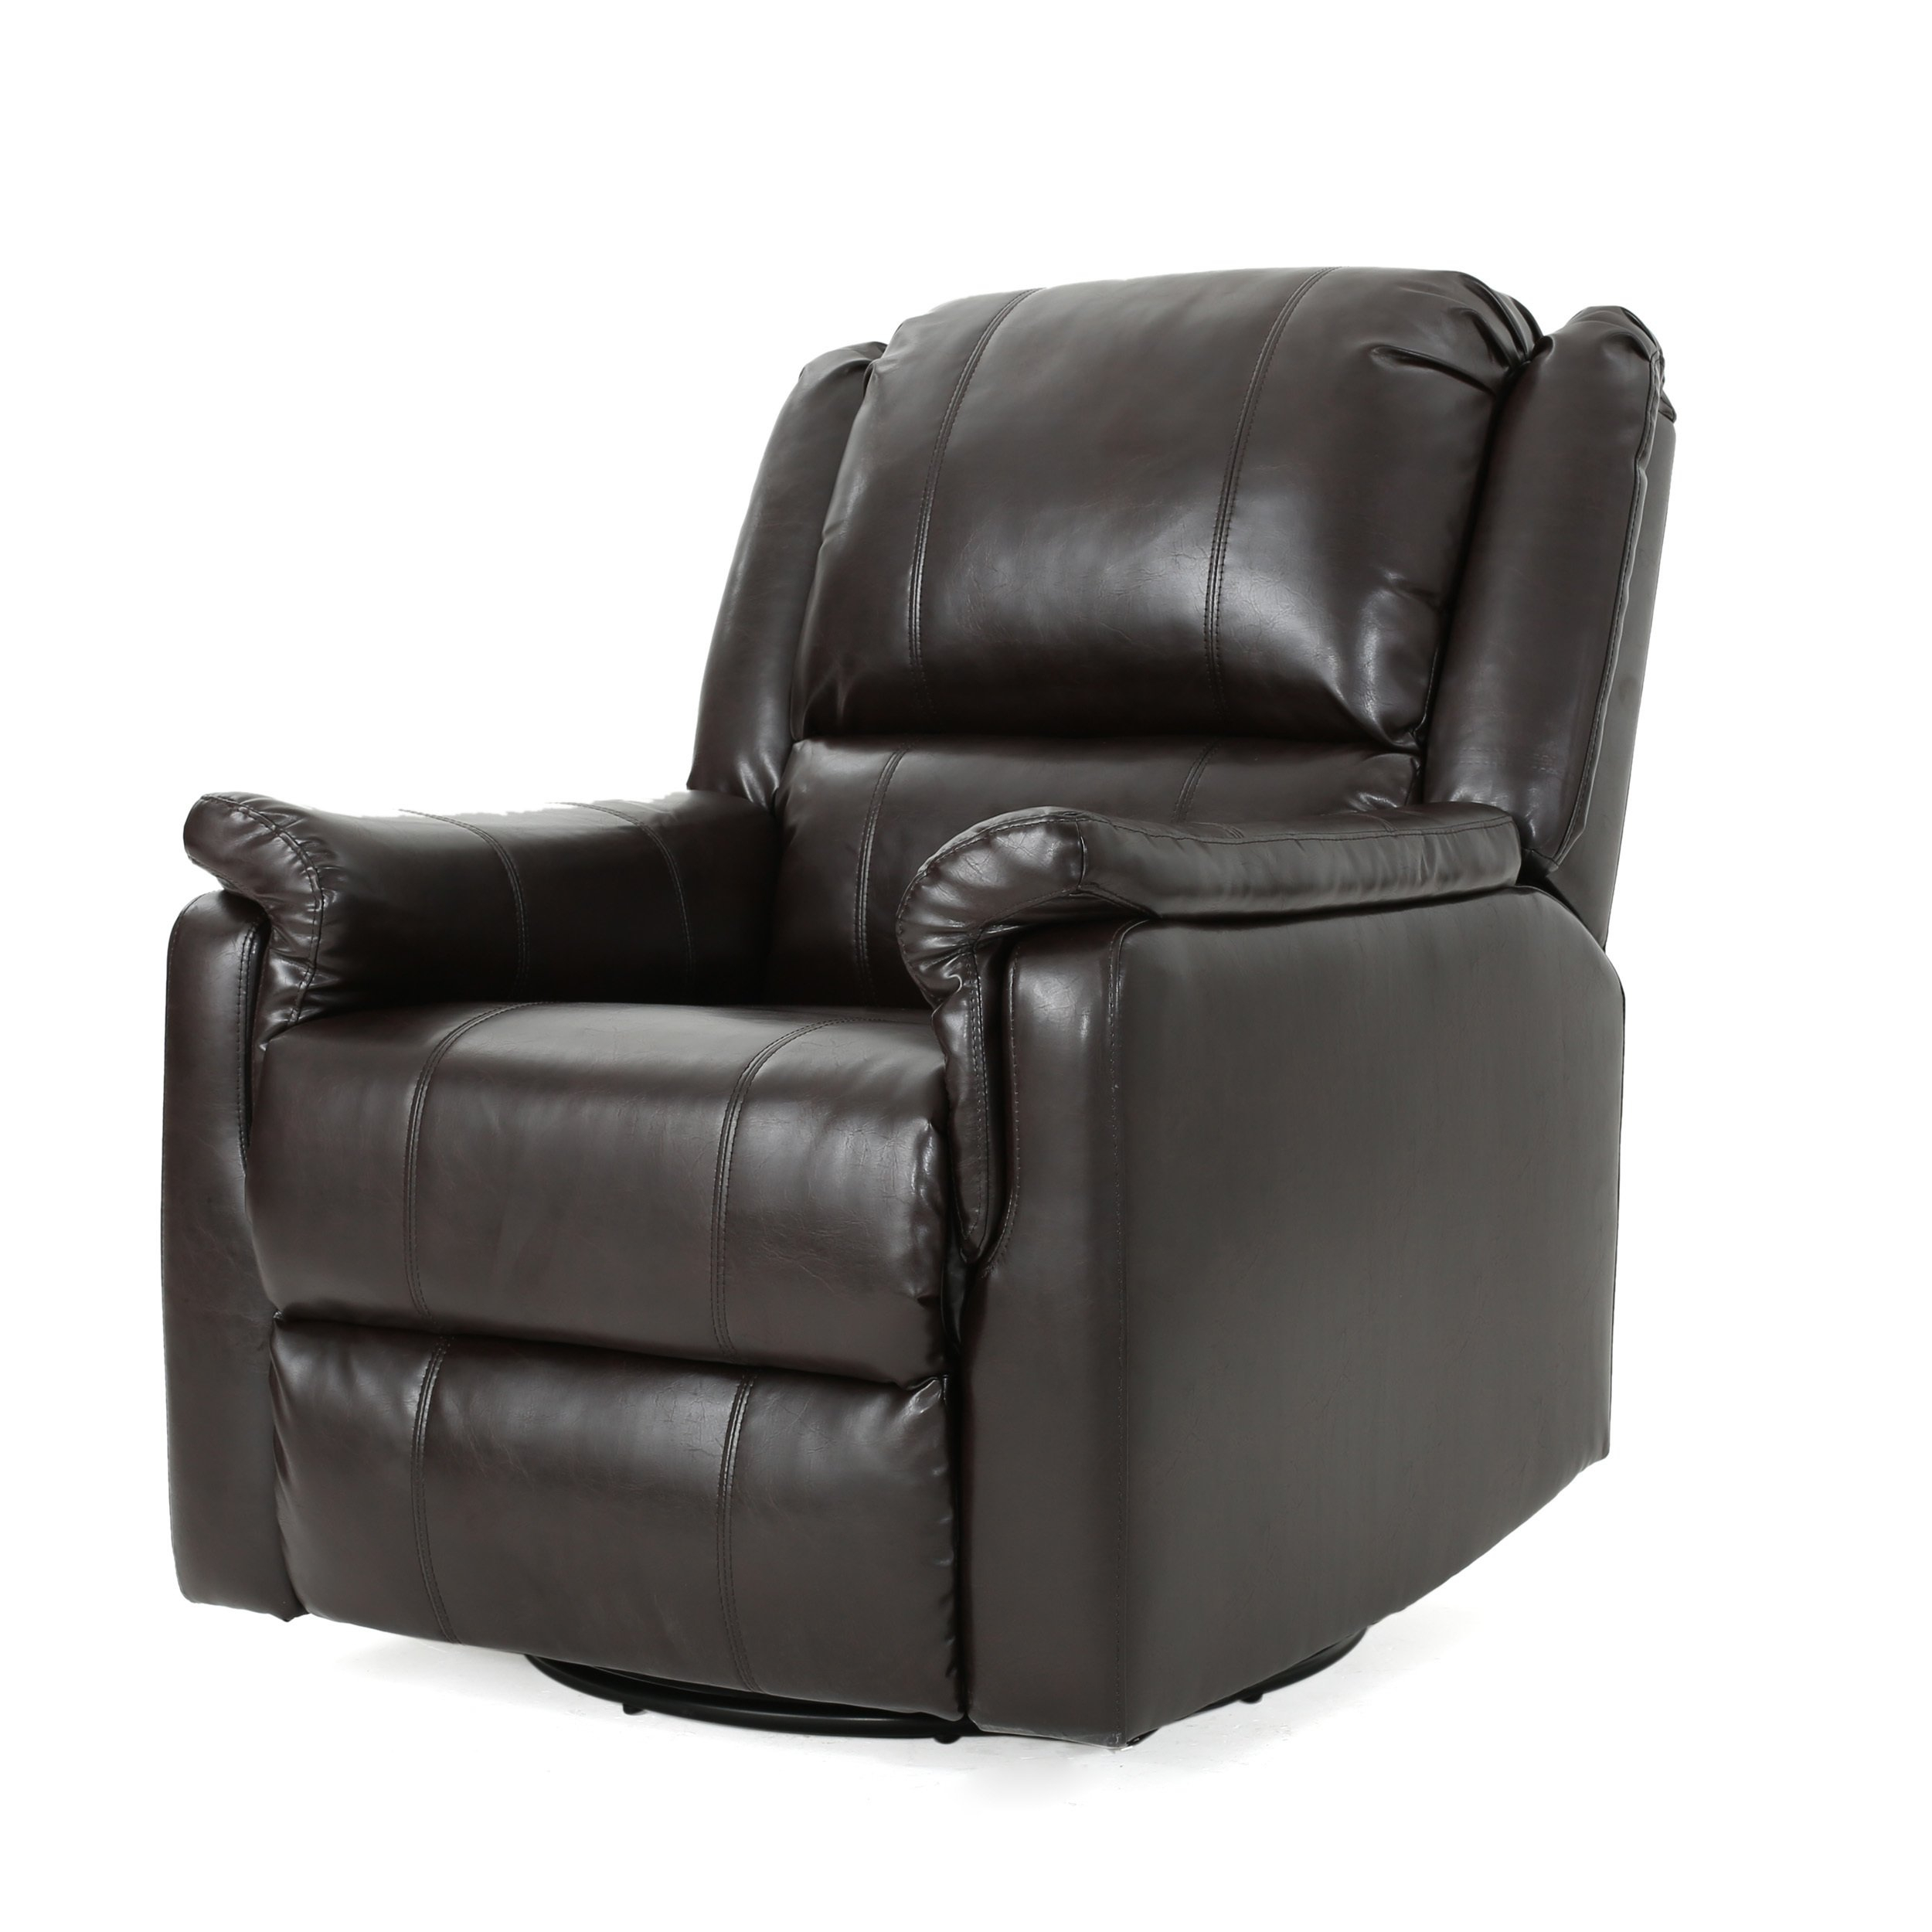 Shop Jennette Faux Leather Swivel Gliding Reclinerchristopher With Regard To Franco Iii Fabric Swivel Rocker Recliners (View 14 of 25)